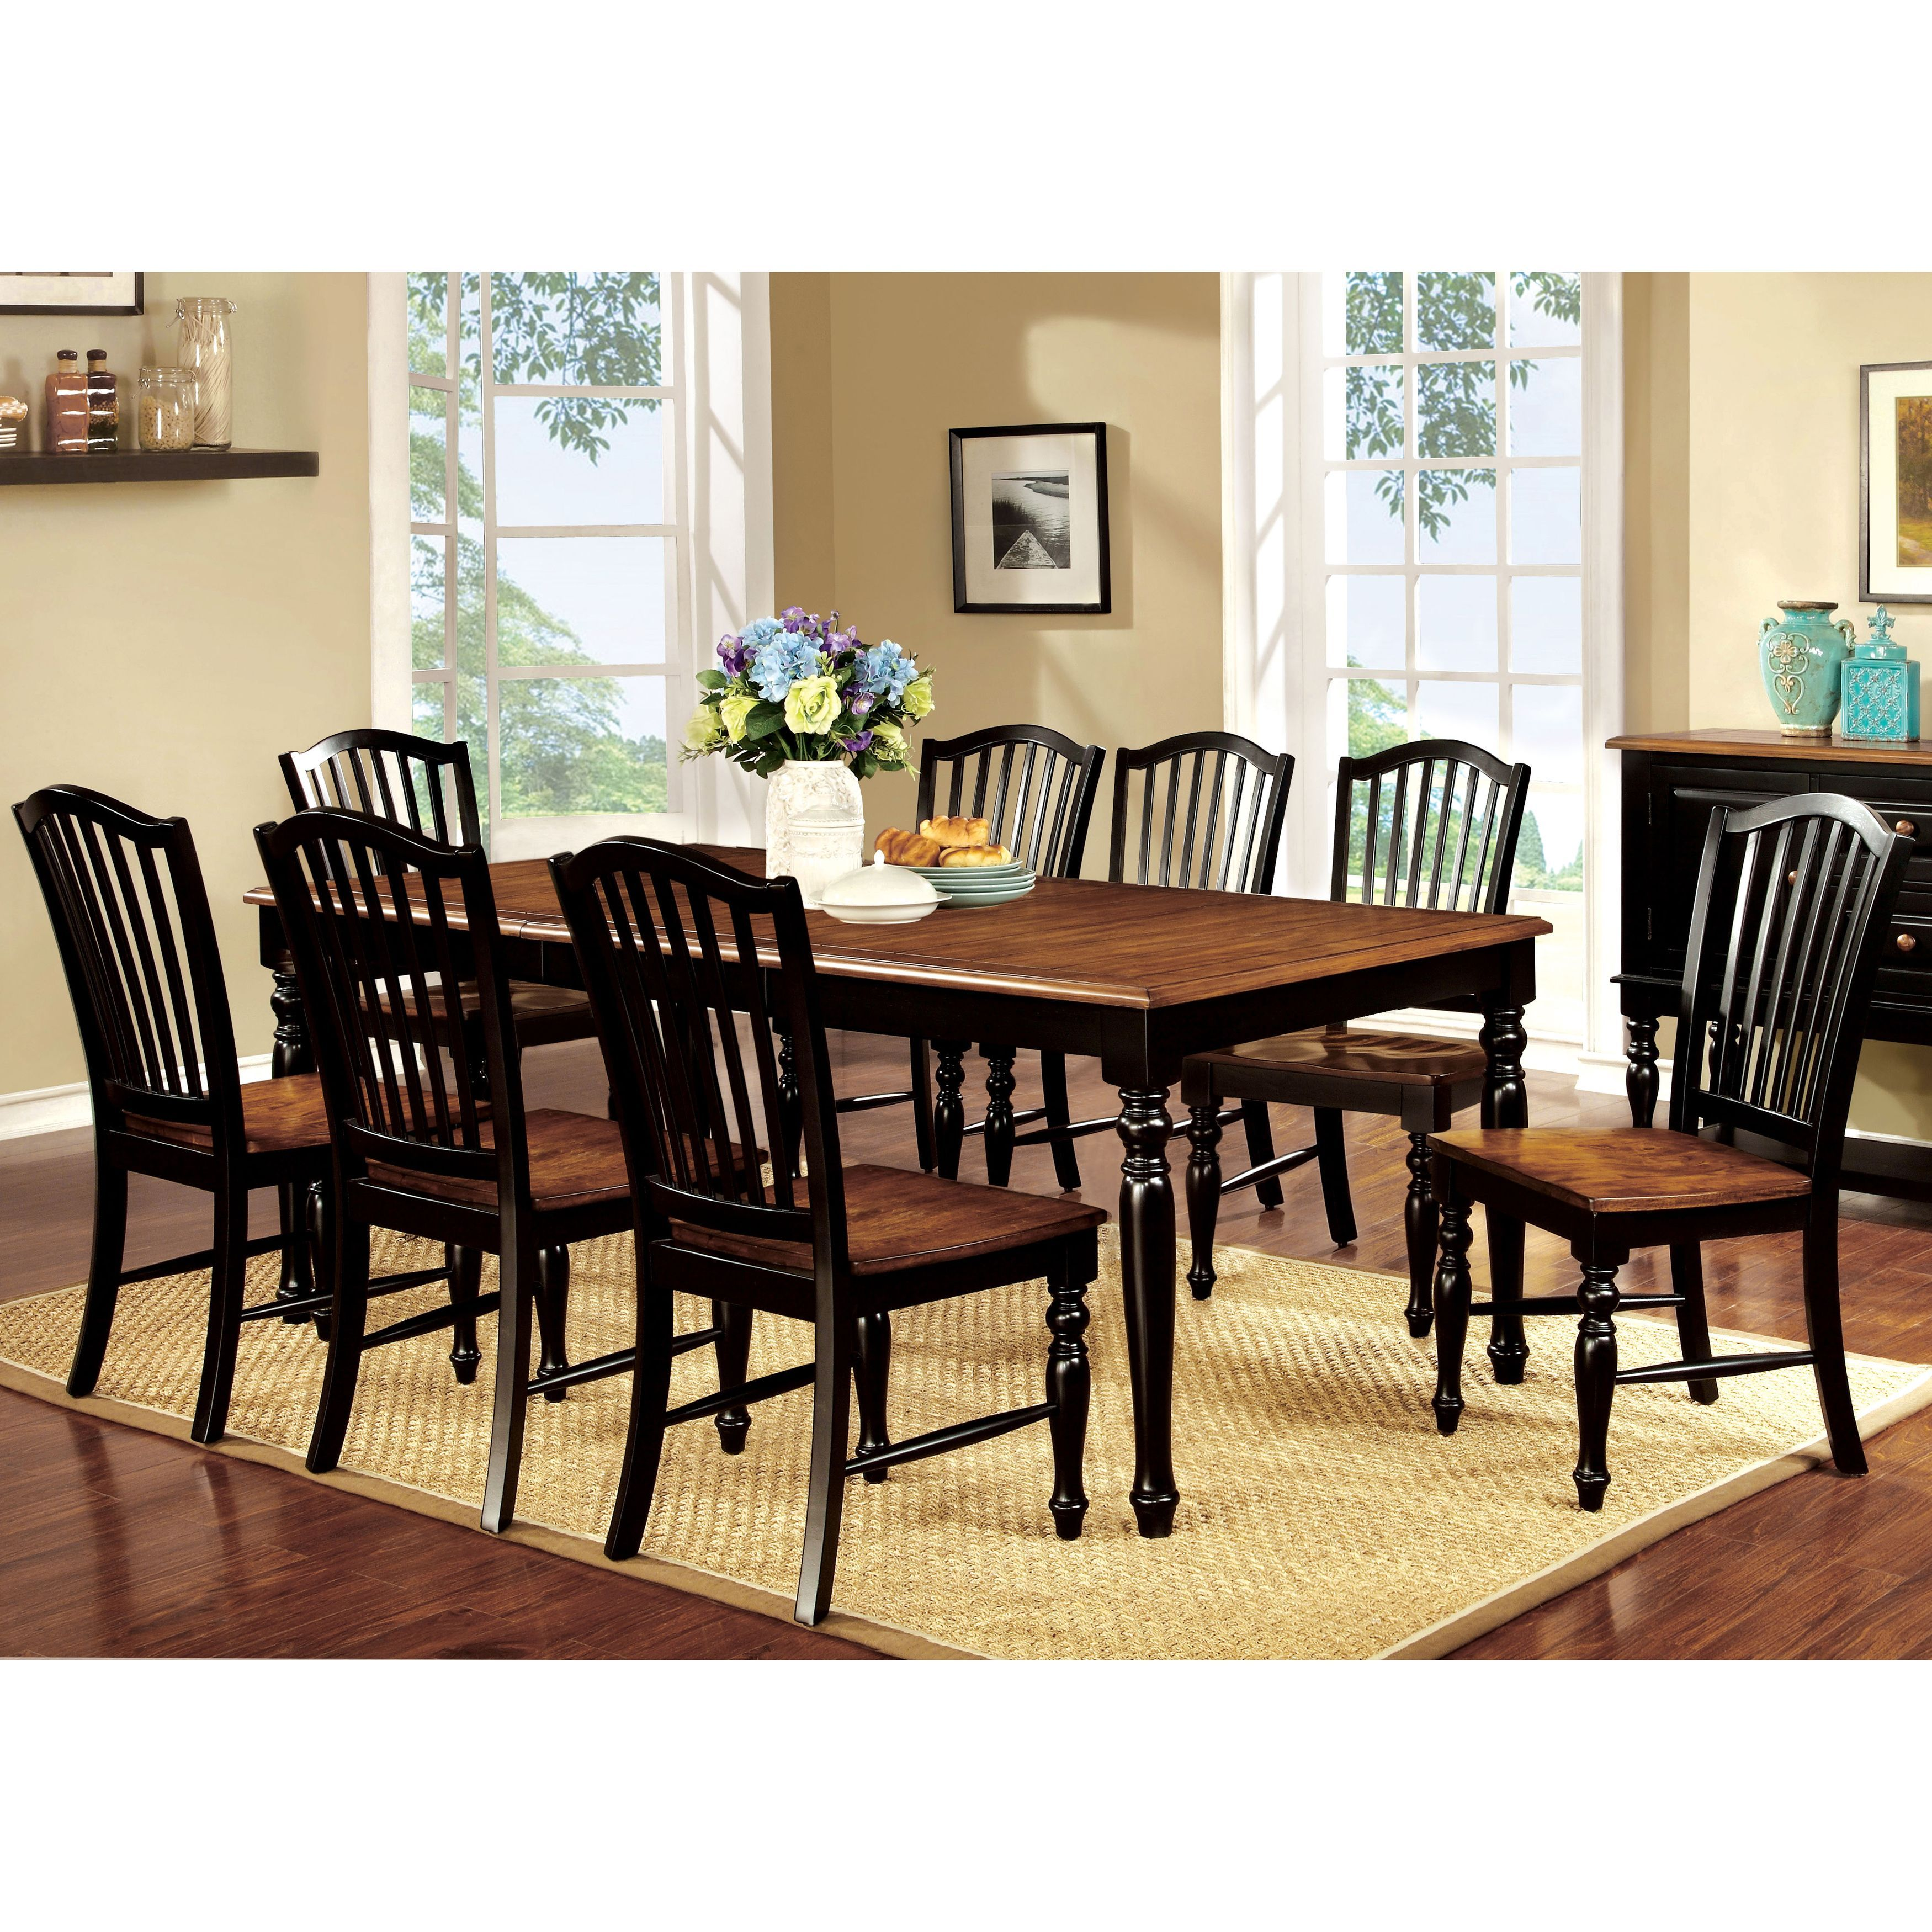 Country Kitchen Dining Set: Furniture Of America Levole 2-Tone 9-Piece Country Style